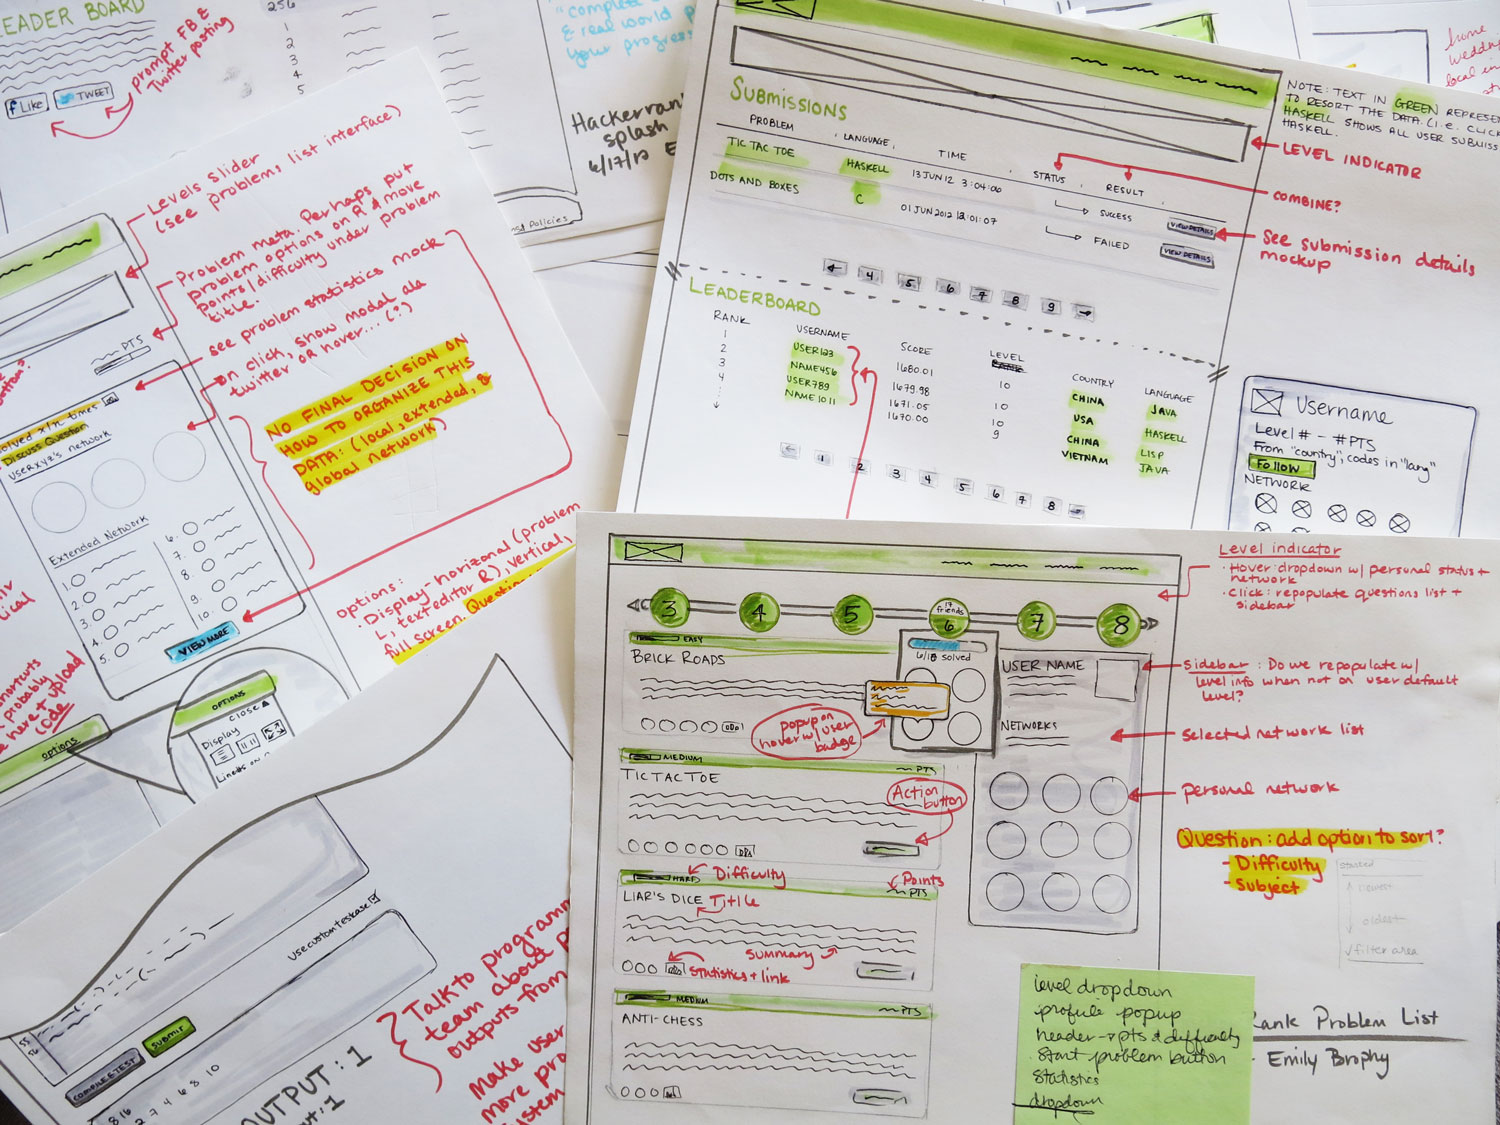 holistic customer experience map for InVision